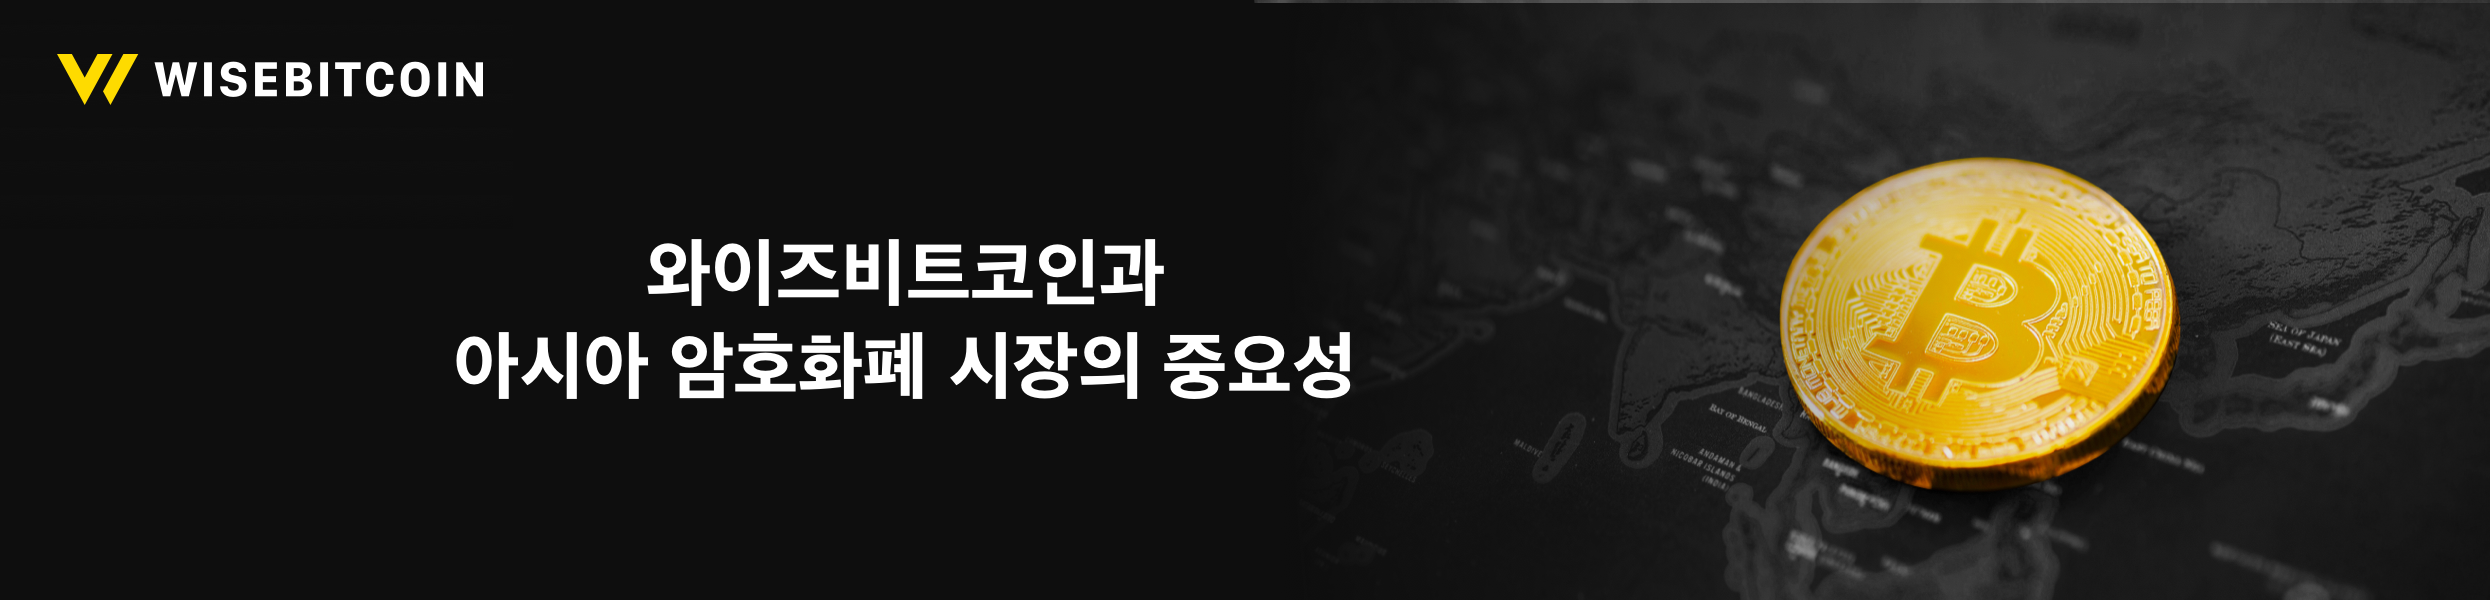 importance of the asian crypto amrket banner korean version